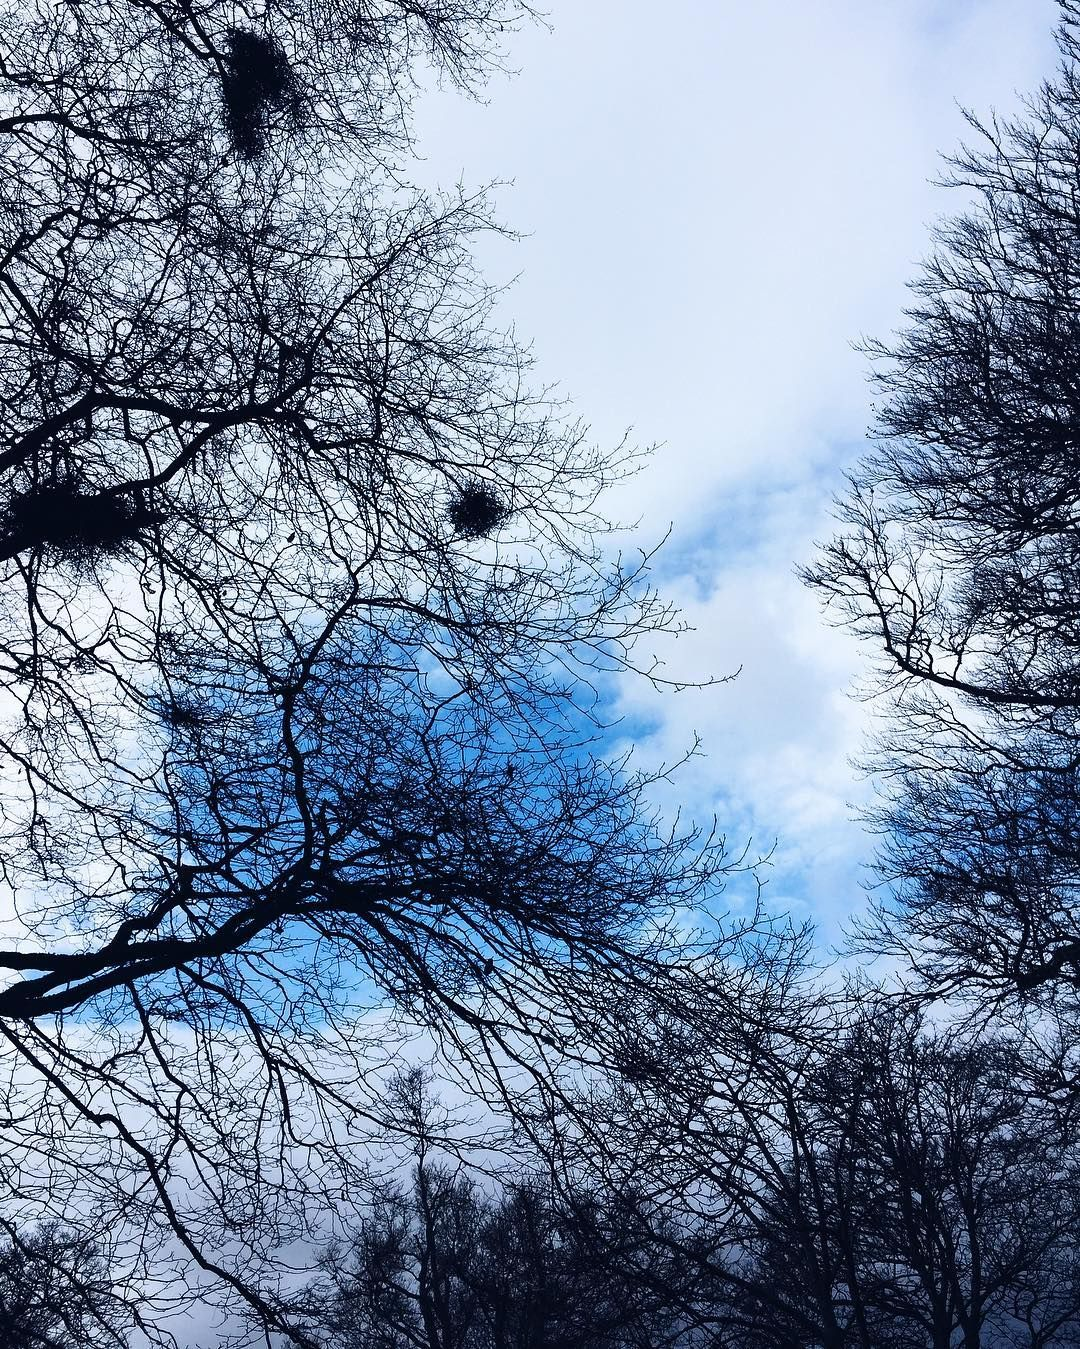 #LookUp  Such a lovely long park walk today - my nose and hands are still freezing  #ParkLife #BeautifulScotland #Balloch #Skyporn